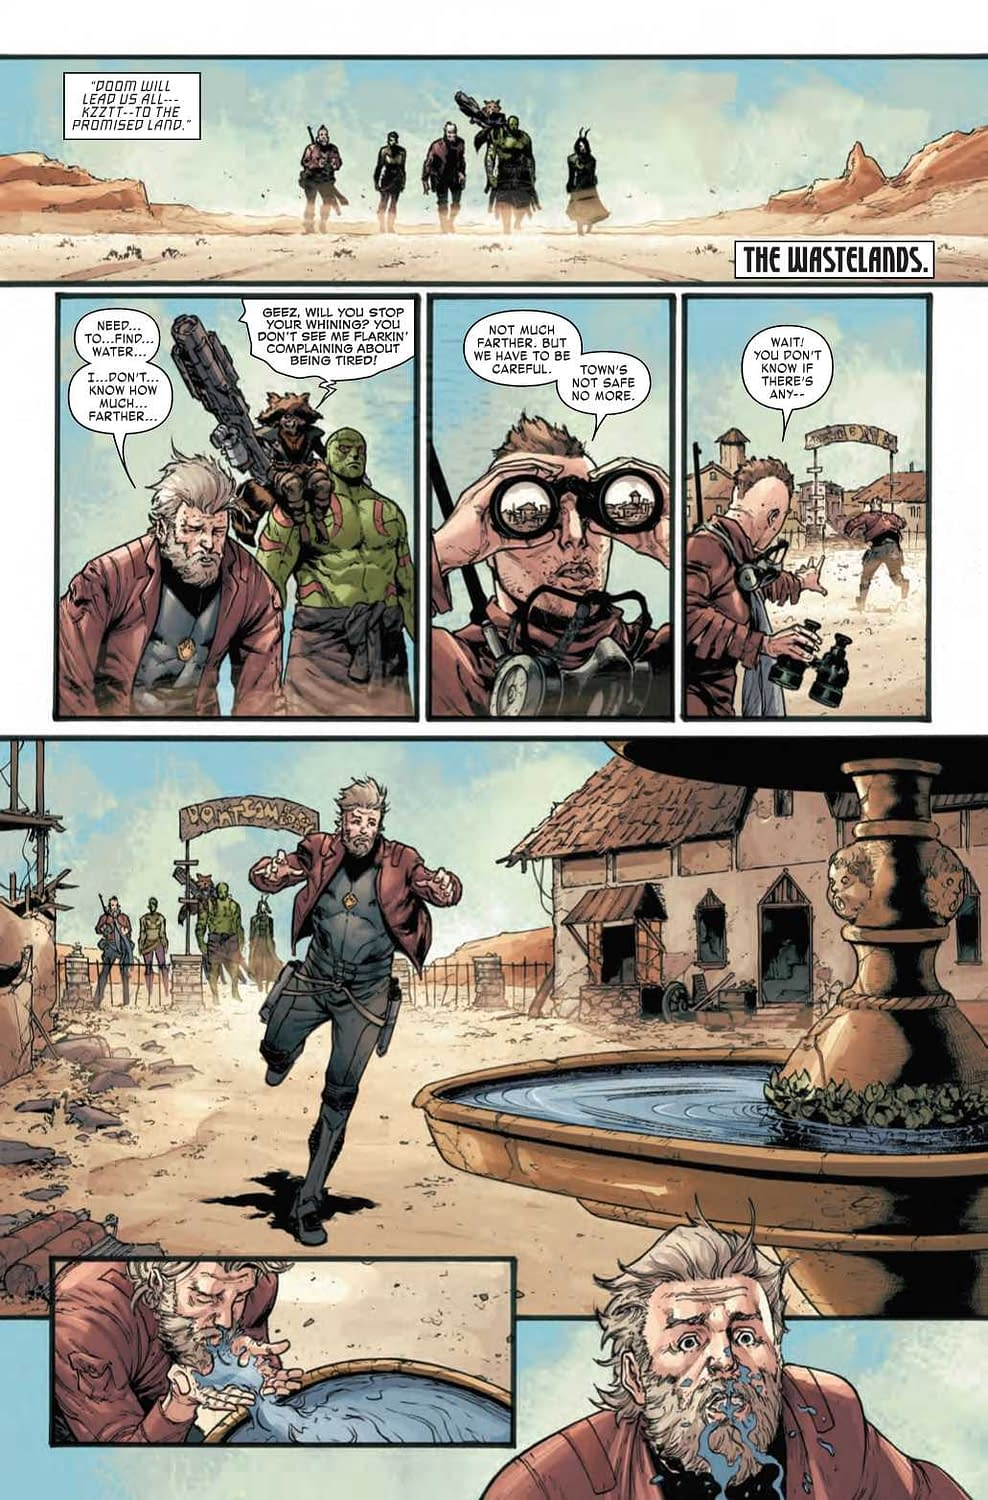 Are Doom Meals Better or Worse Than Dinner at the White House? Next Week's Old Man Quill #2 (Preview)